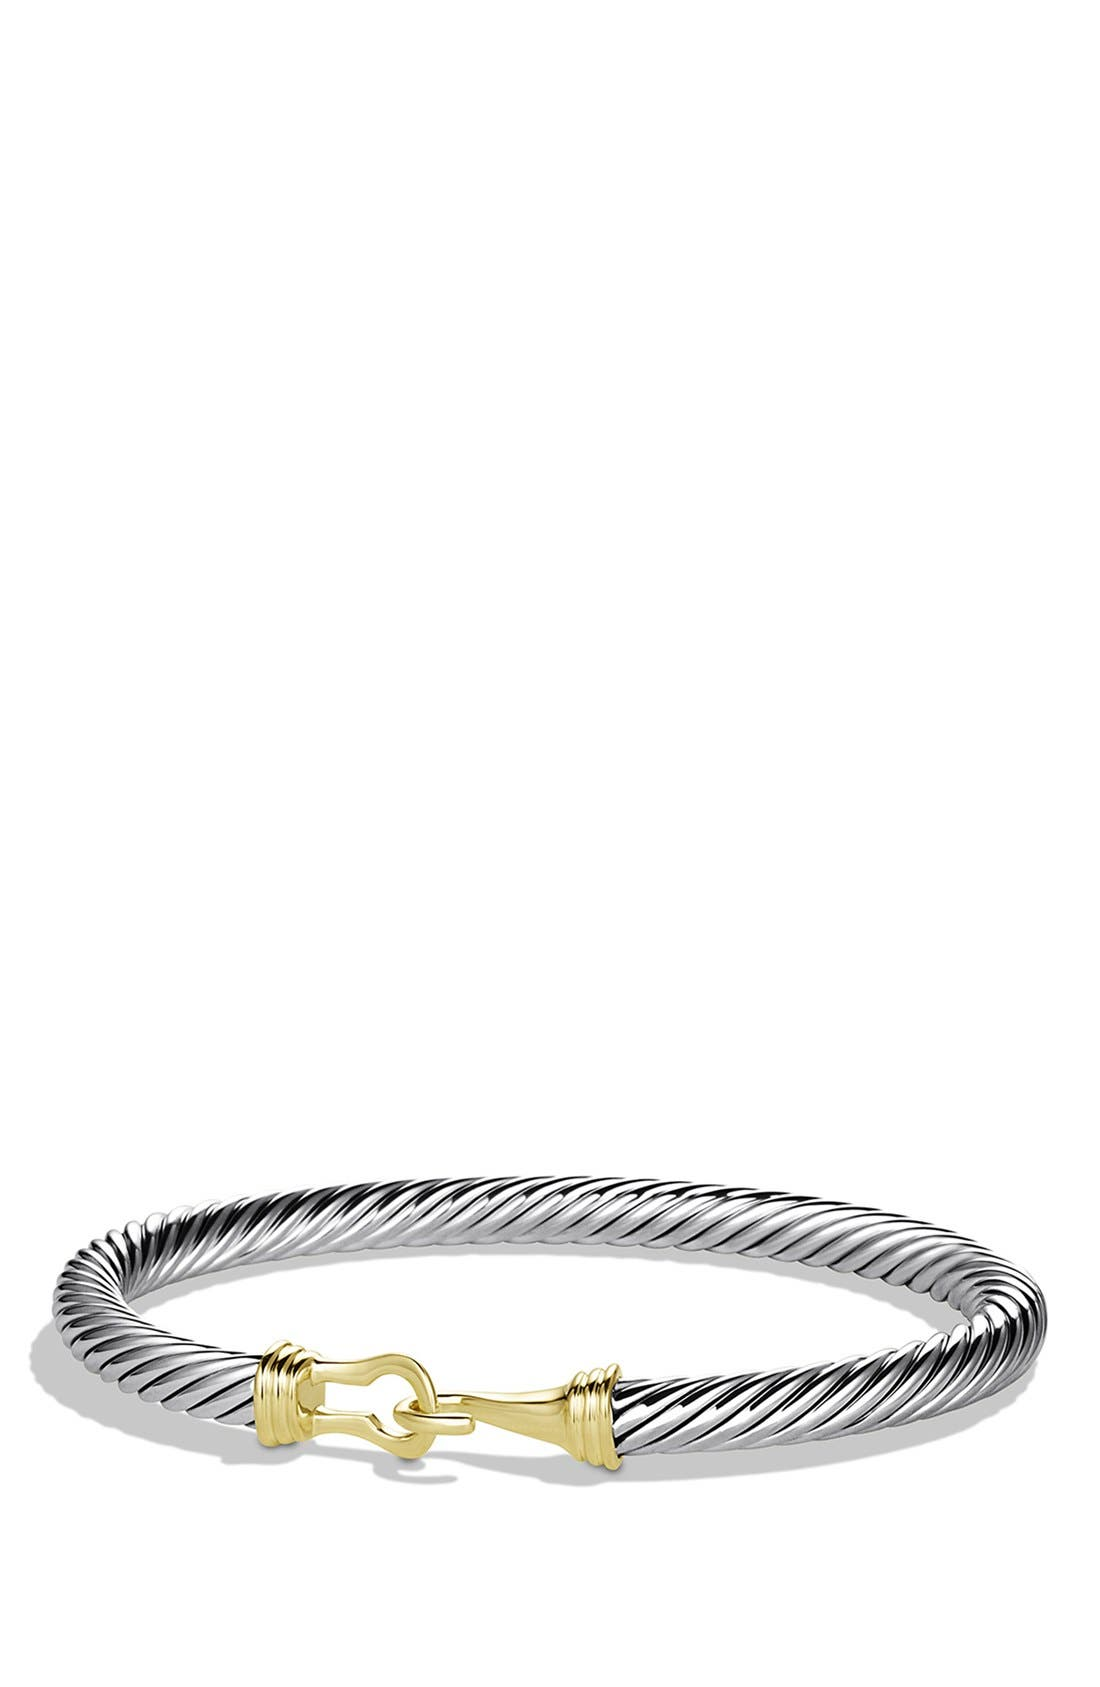 'Cable Buckle' Bracelet with Gold,                         Main,                         color, 040